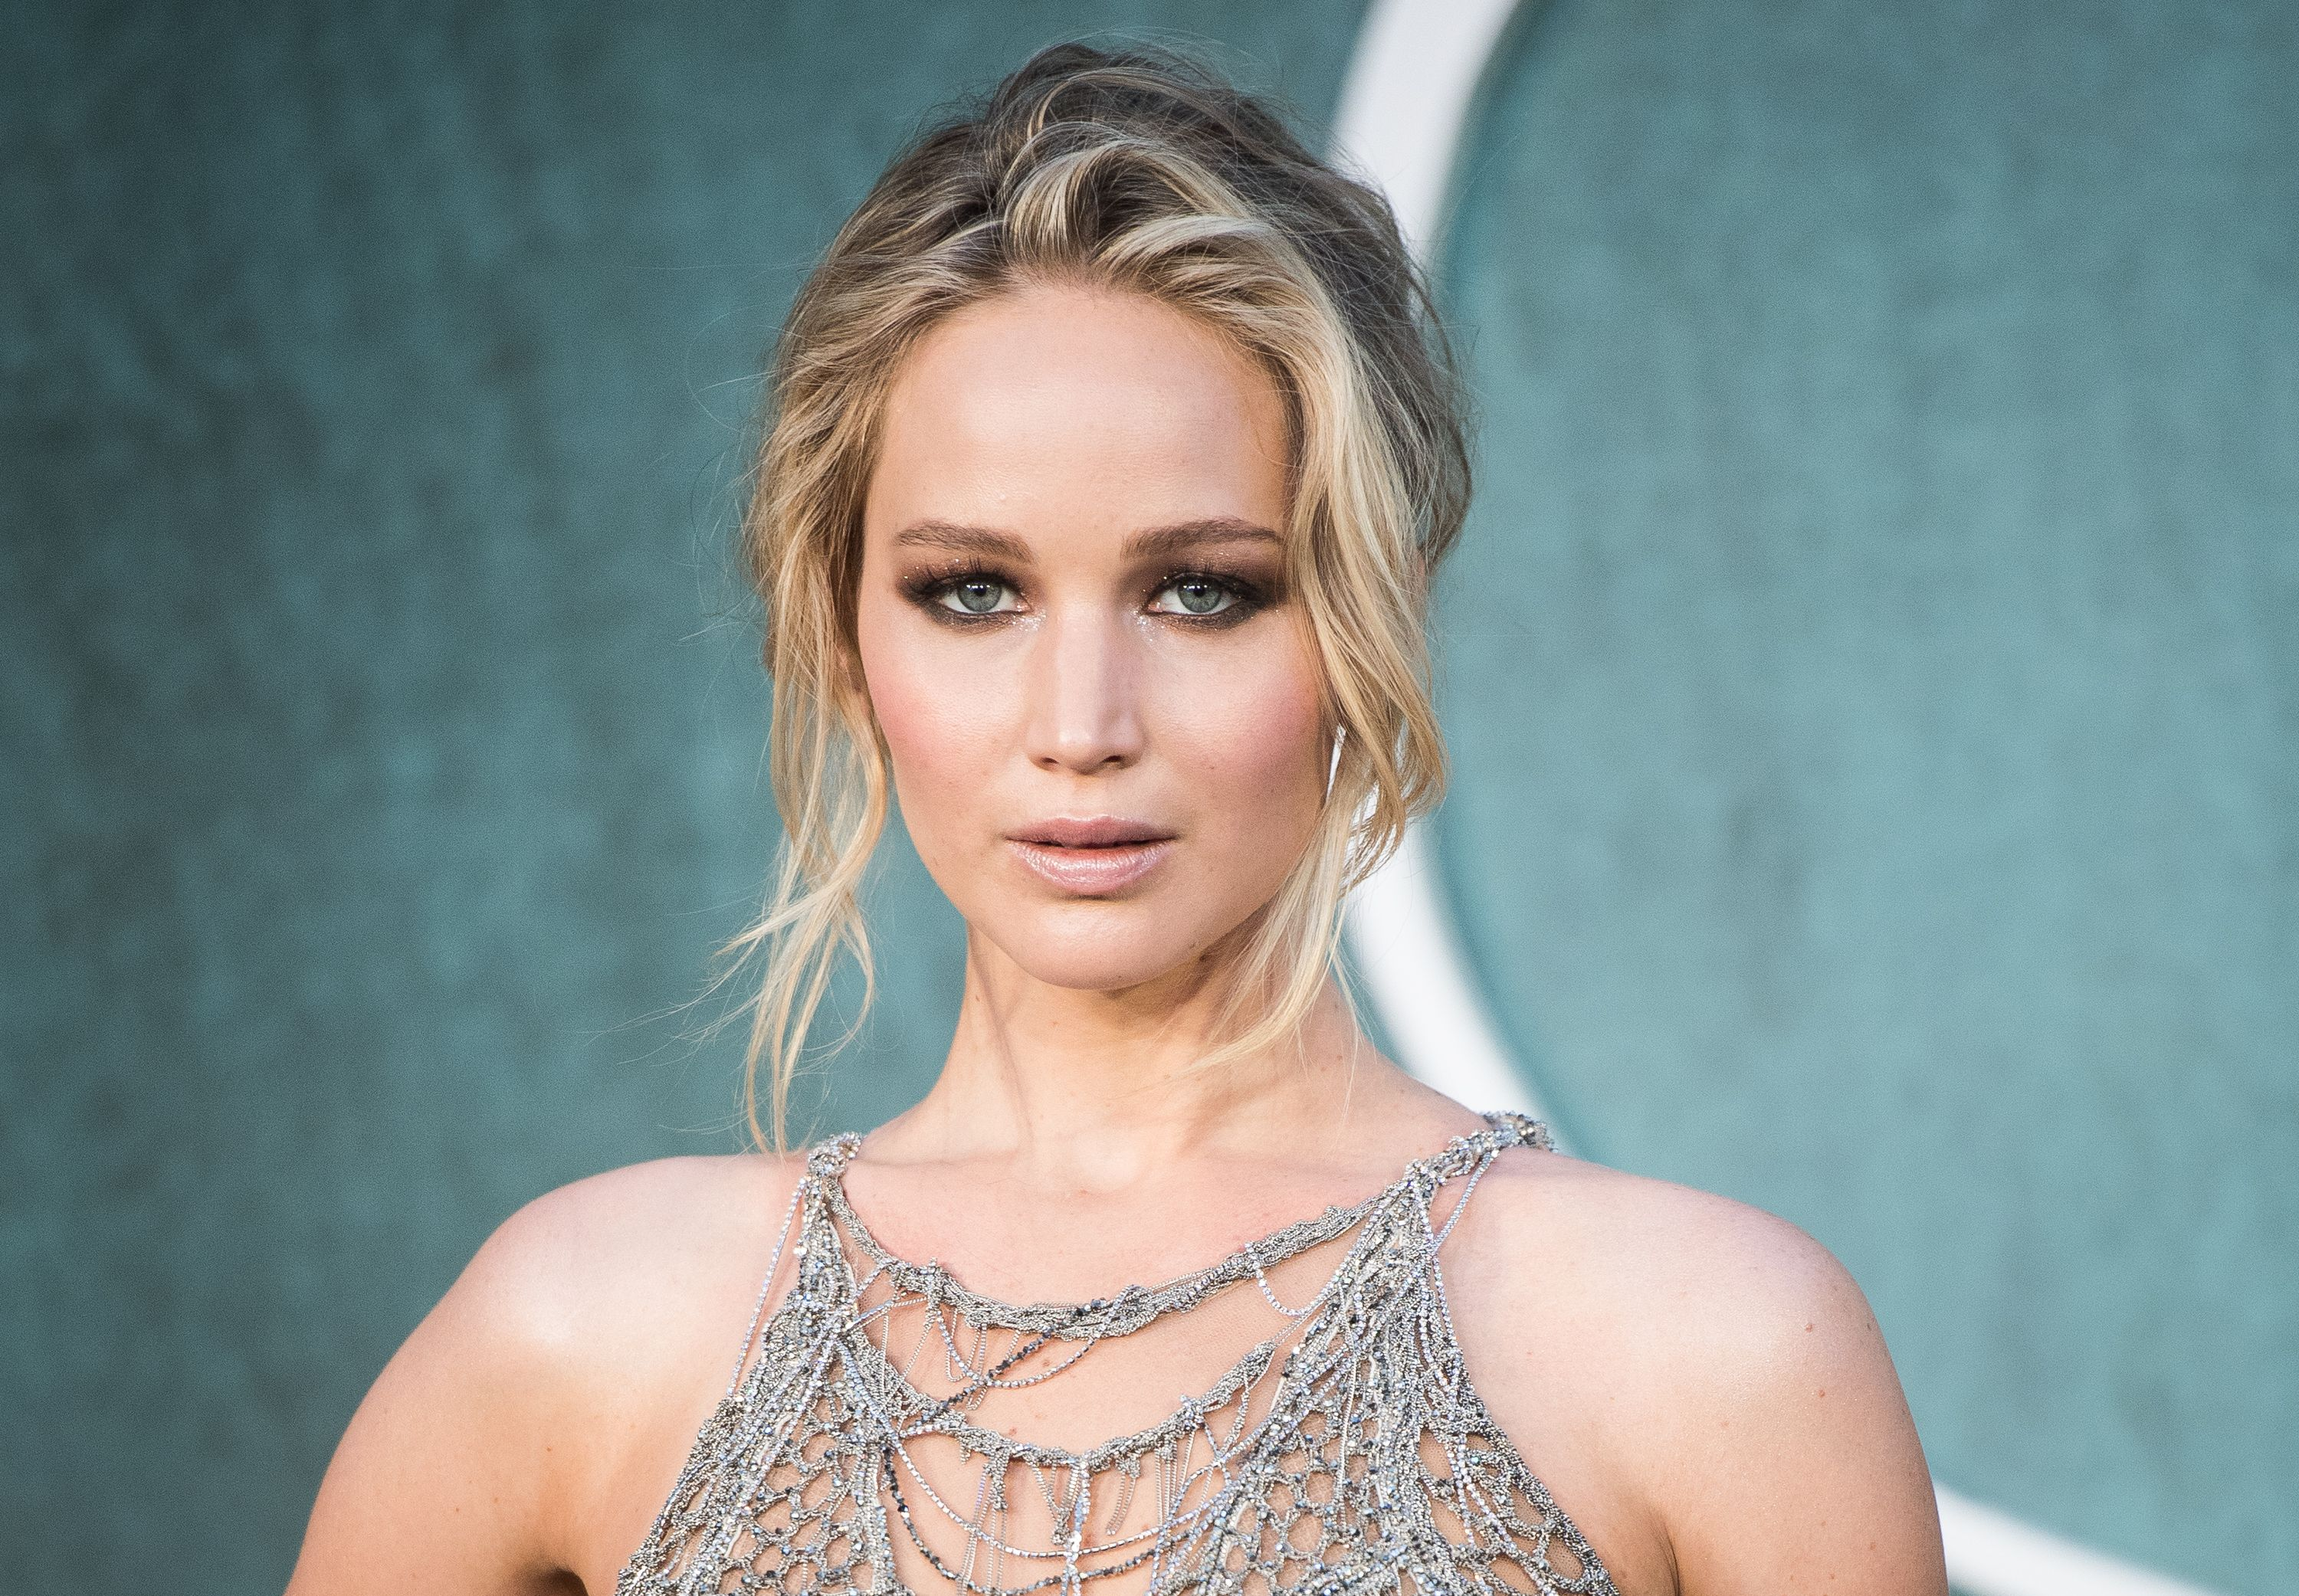 Fotos Jennifer Lawrence nudes (63 photos), Tits, Sideboobs, Selfie, panties 2015